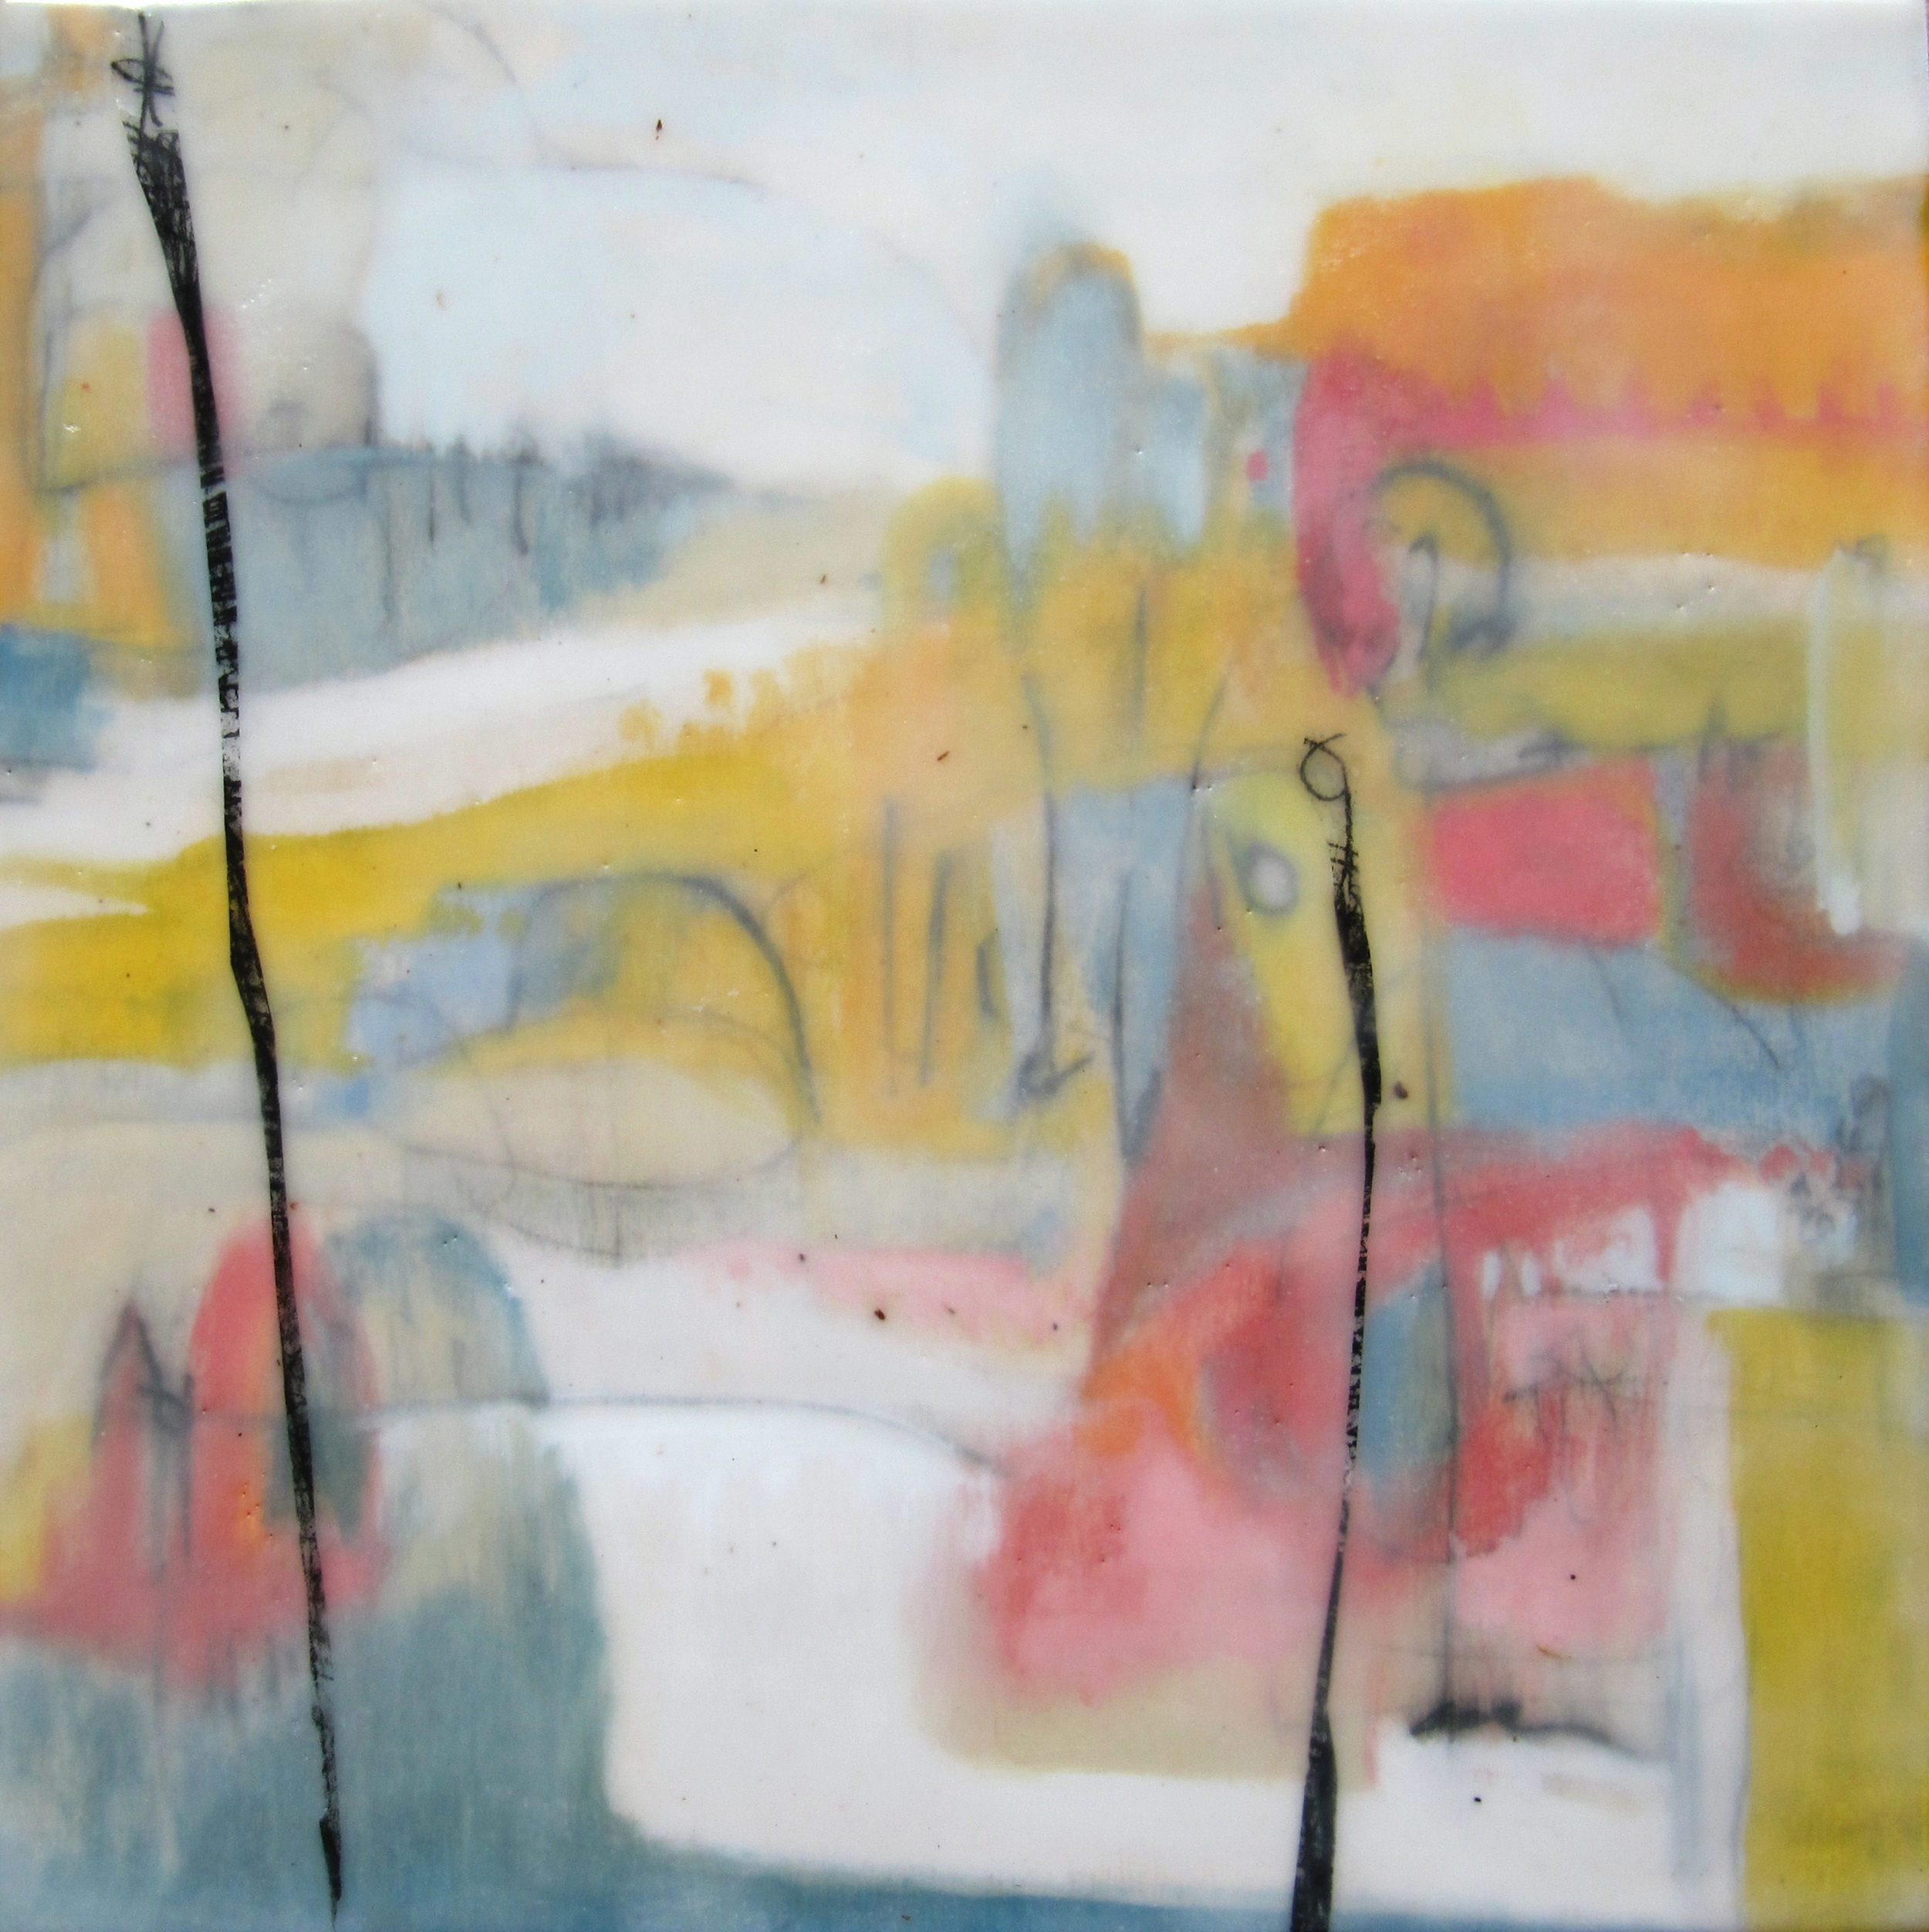 Dreamscape I, 2009 / Encaustic on wood panel, 12 x 12 / Sold